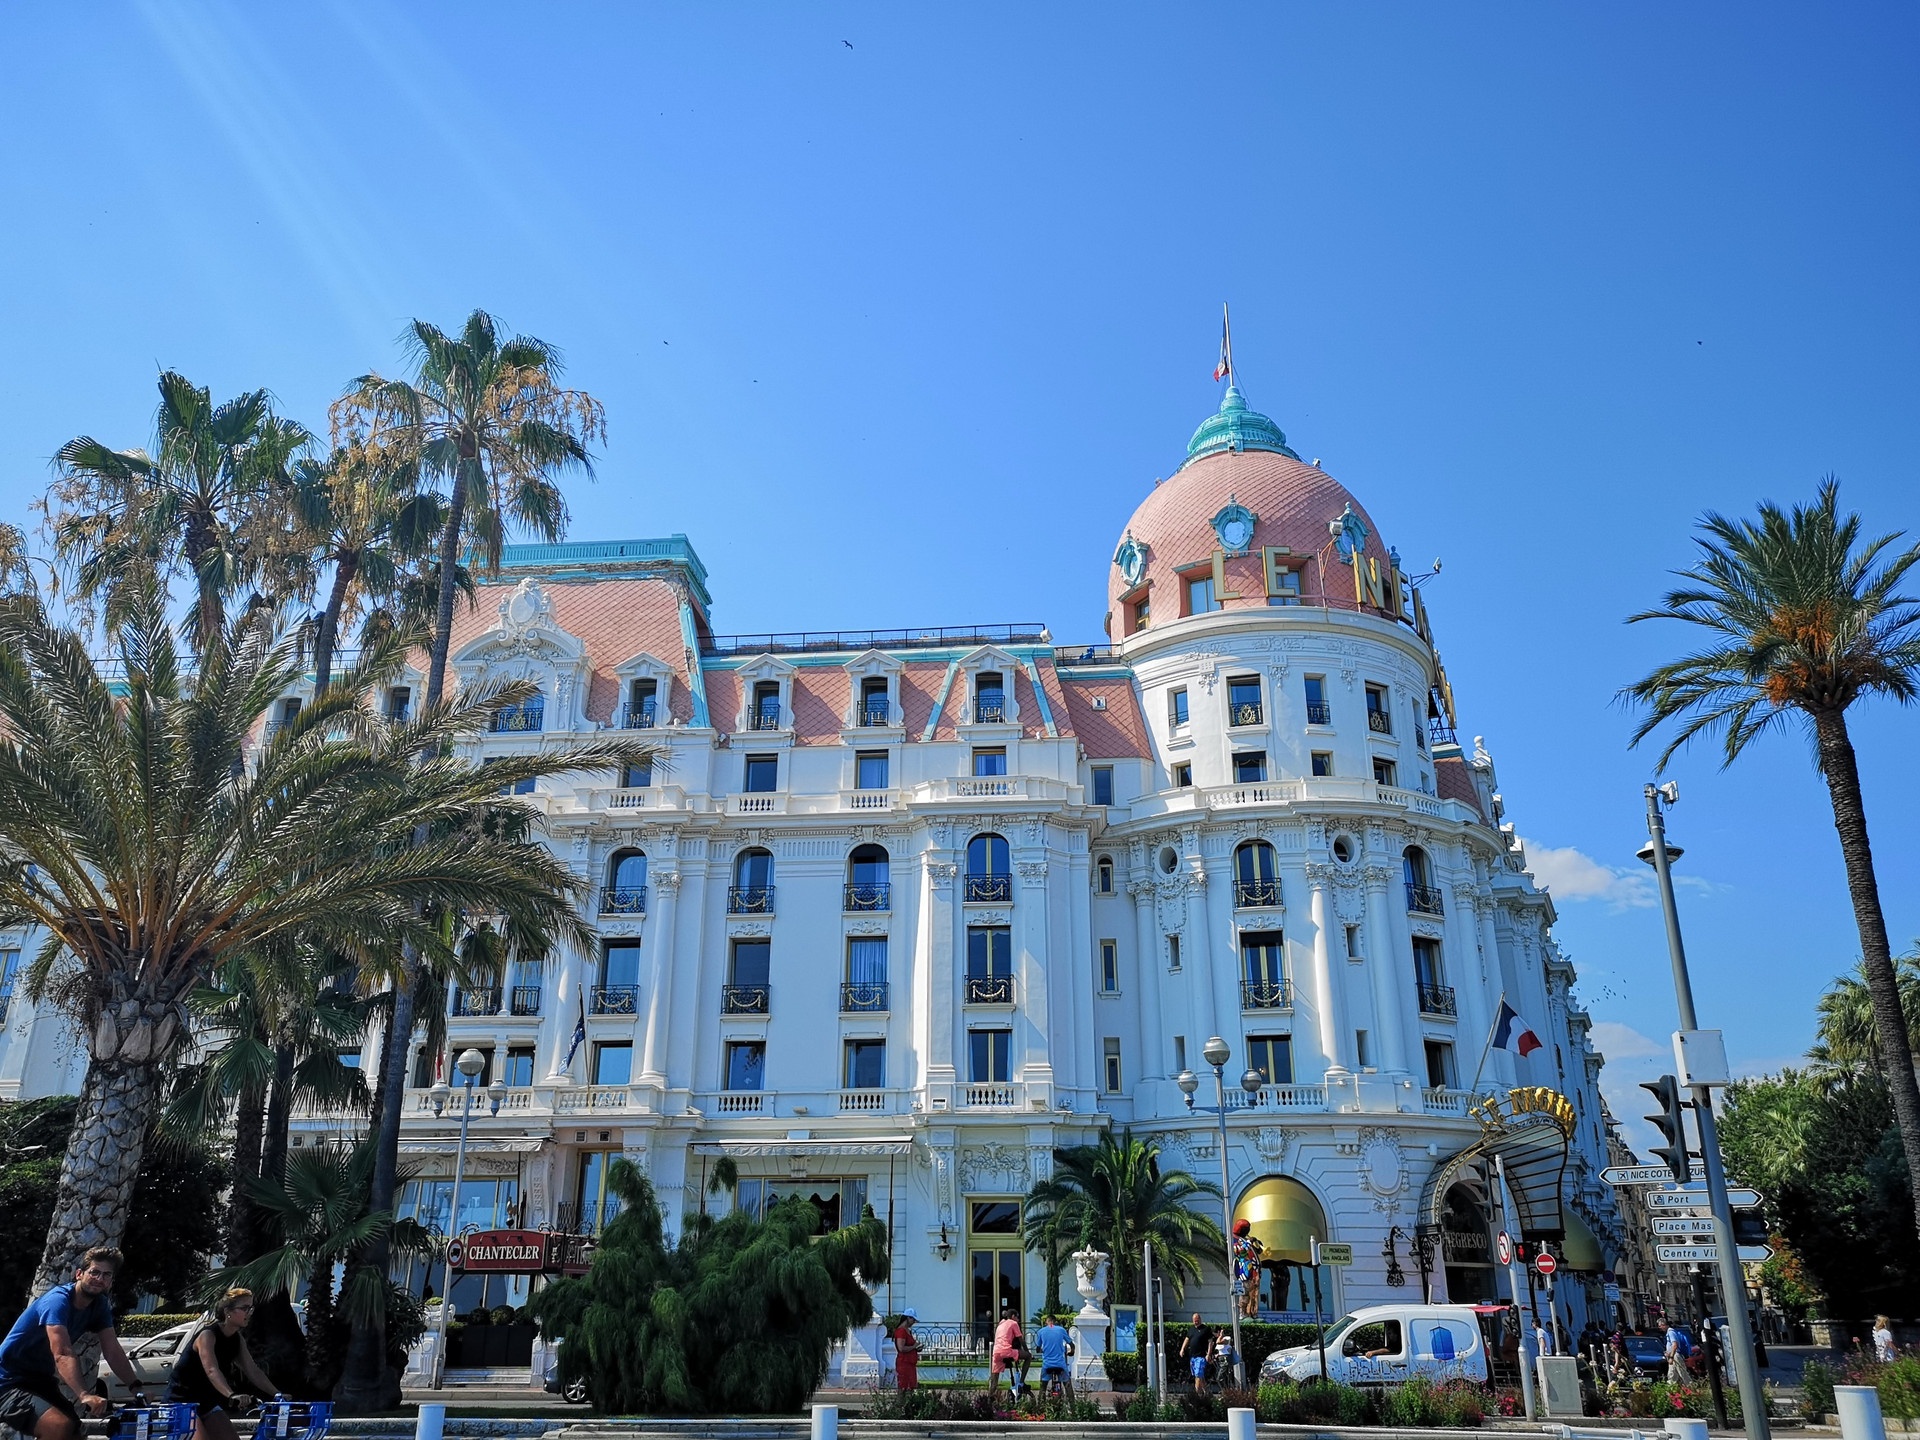 The Negresco Hotel